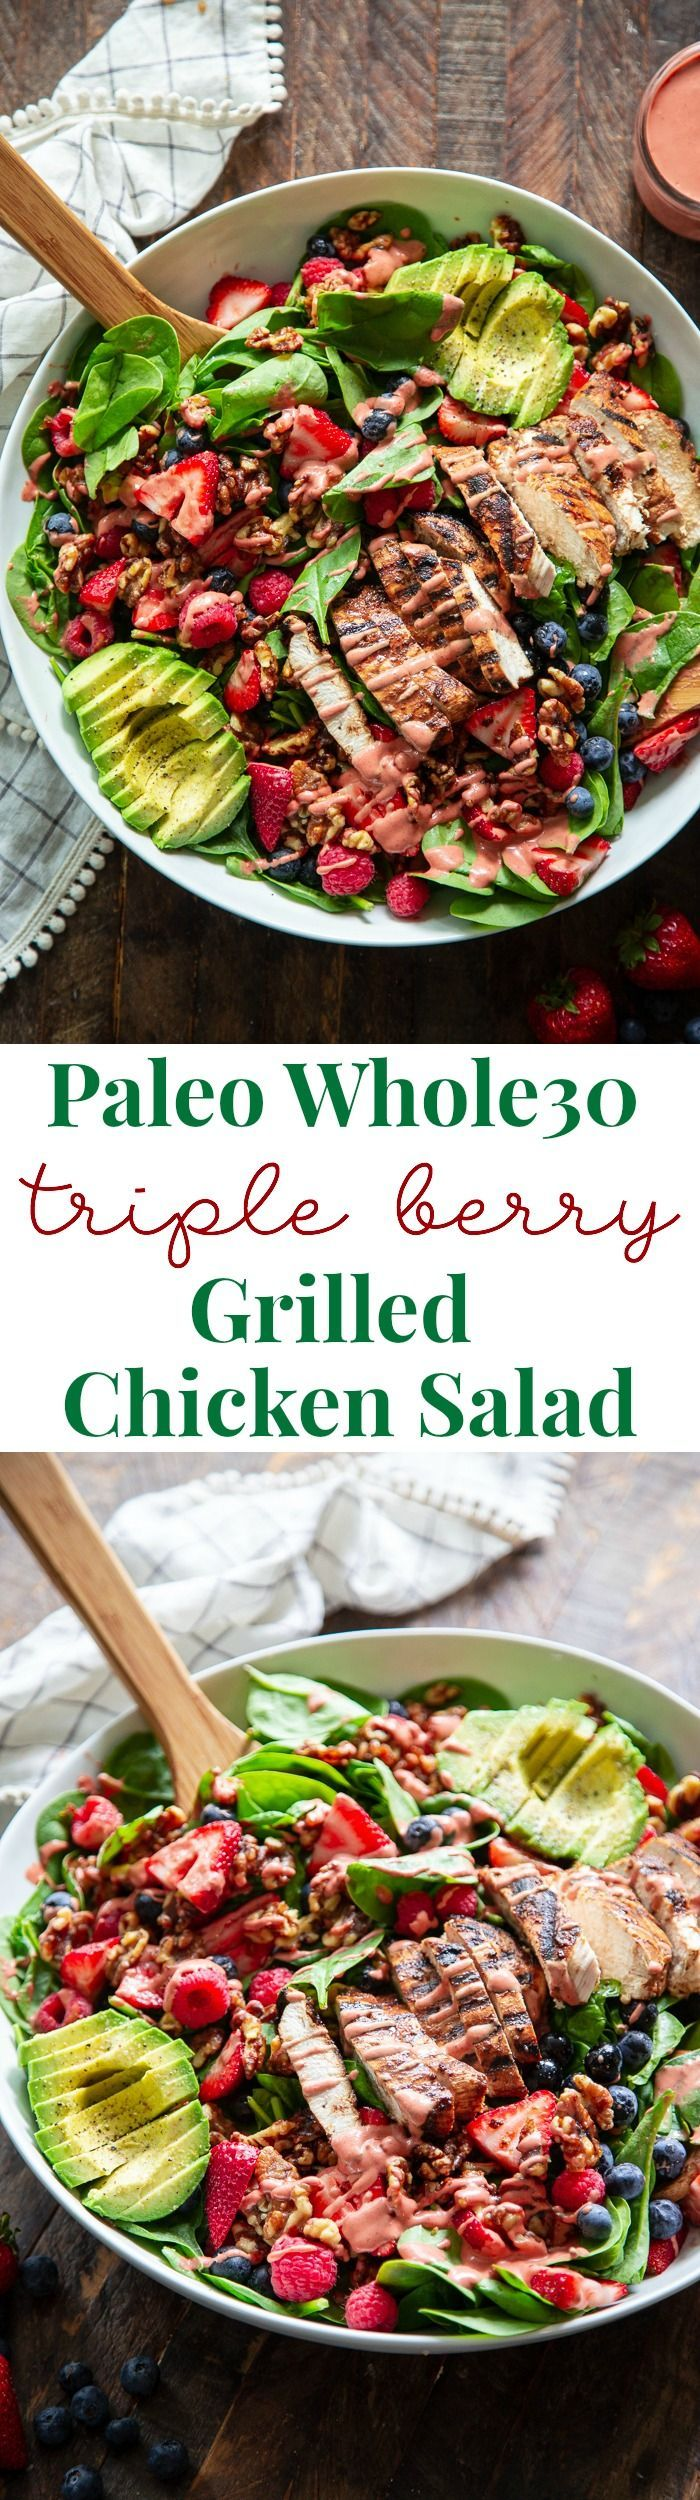 Triple Berry Avocado Grilled Chicken Salad {Paleo, Whole30} | #ketofriendlysalads